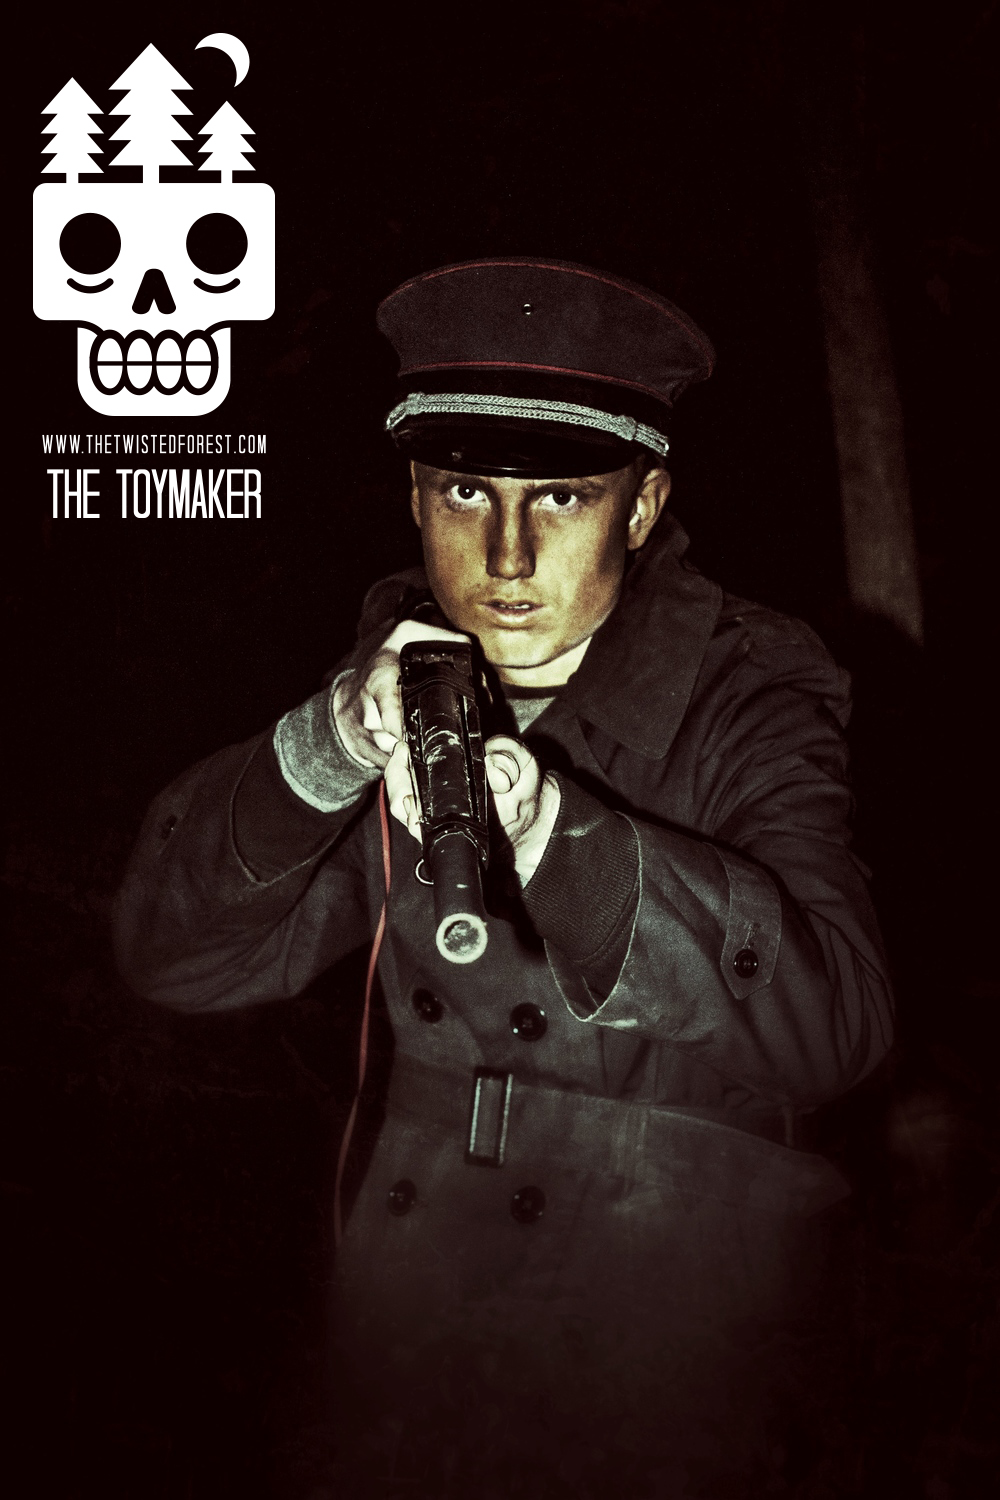 The Toymaker 4.jpg